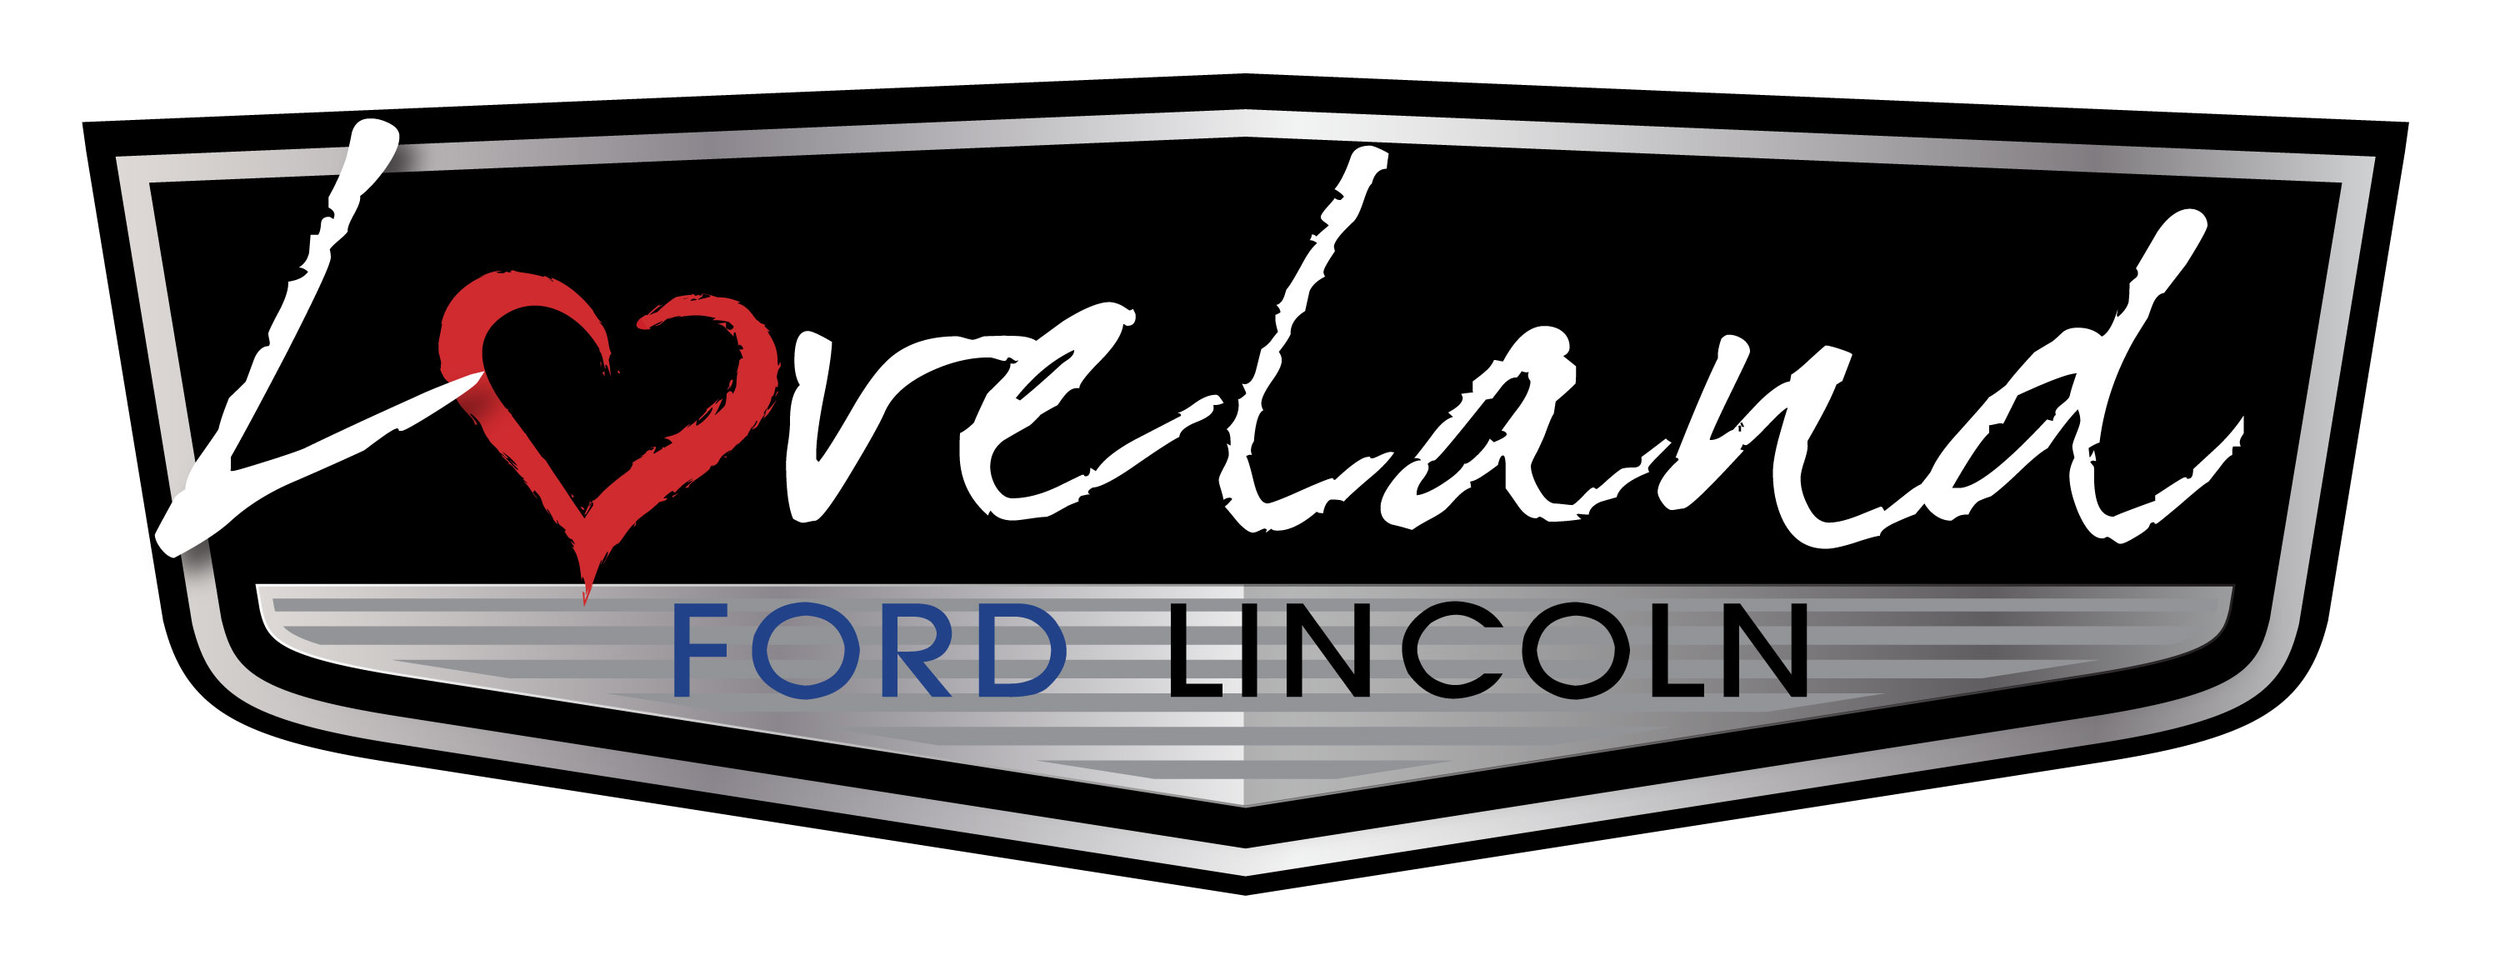 LovelandFord_Logo.jpg